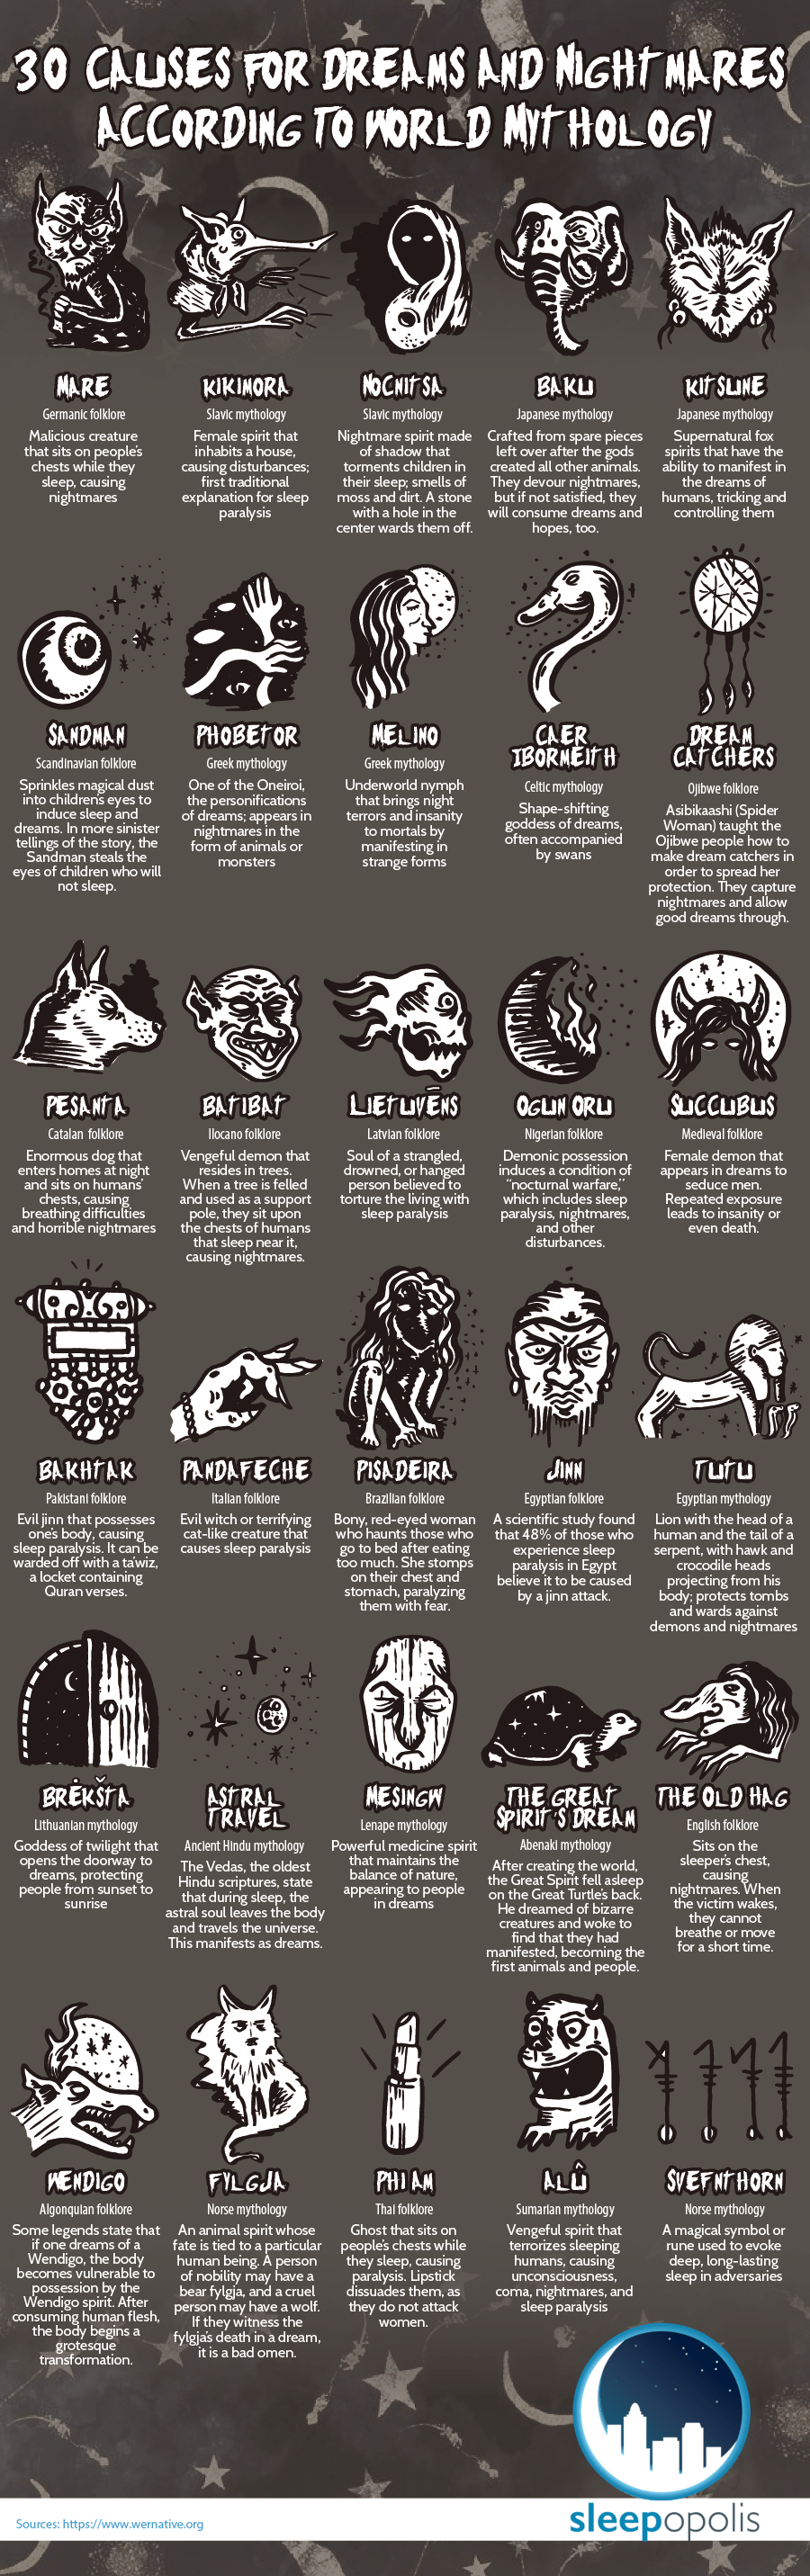 30 Causes for Dreams and Nightmares According to World